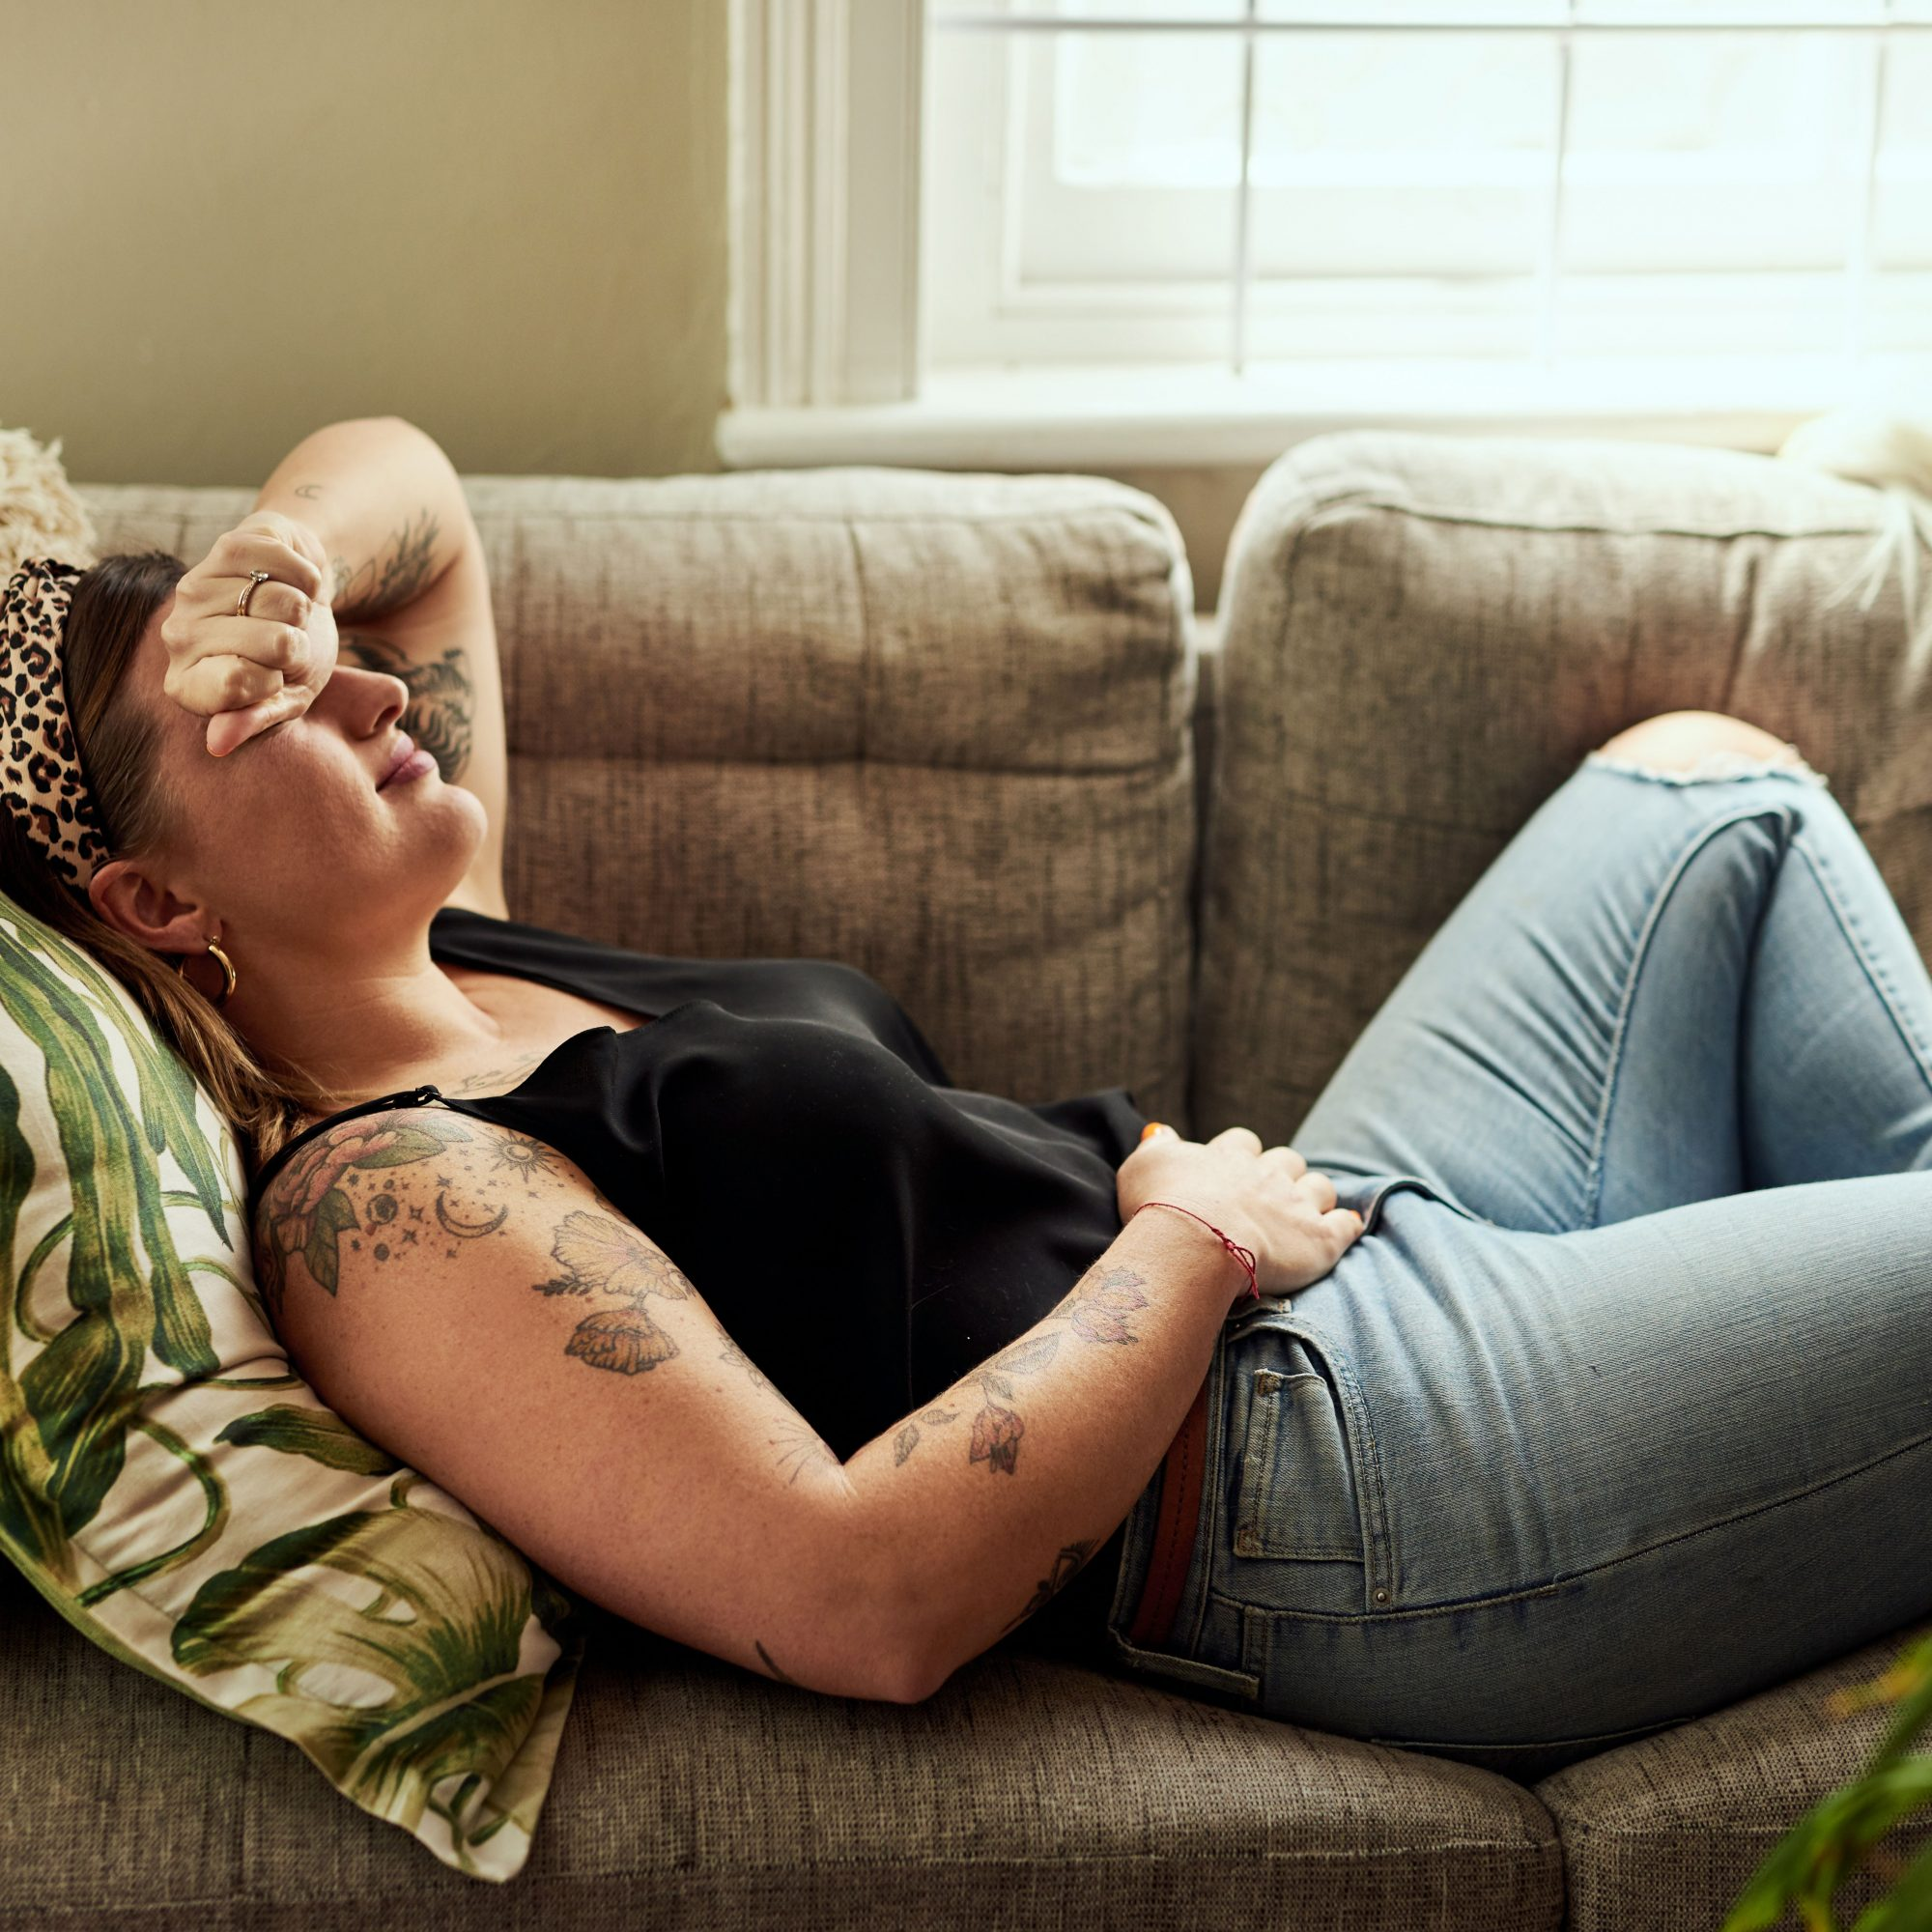 Woman_Laying_On_Couch_With_Hand_On_Abdomen